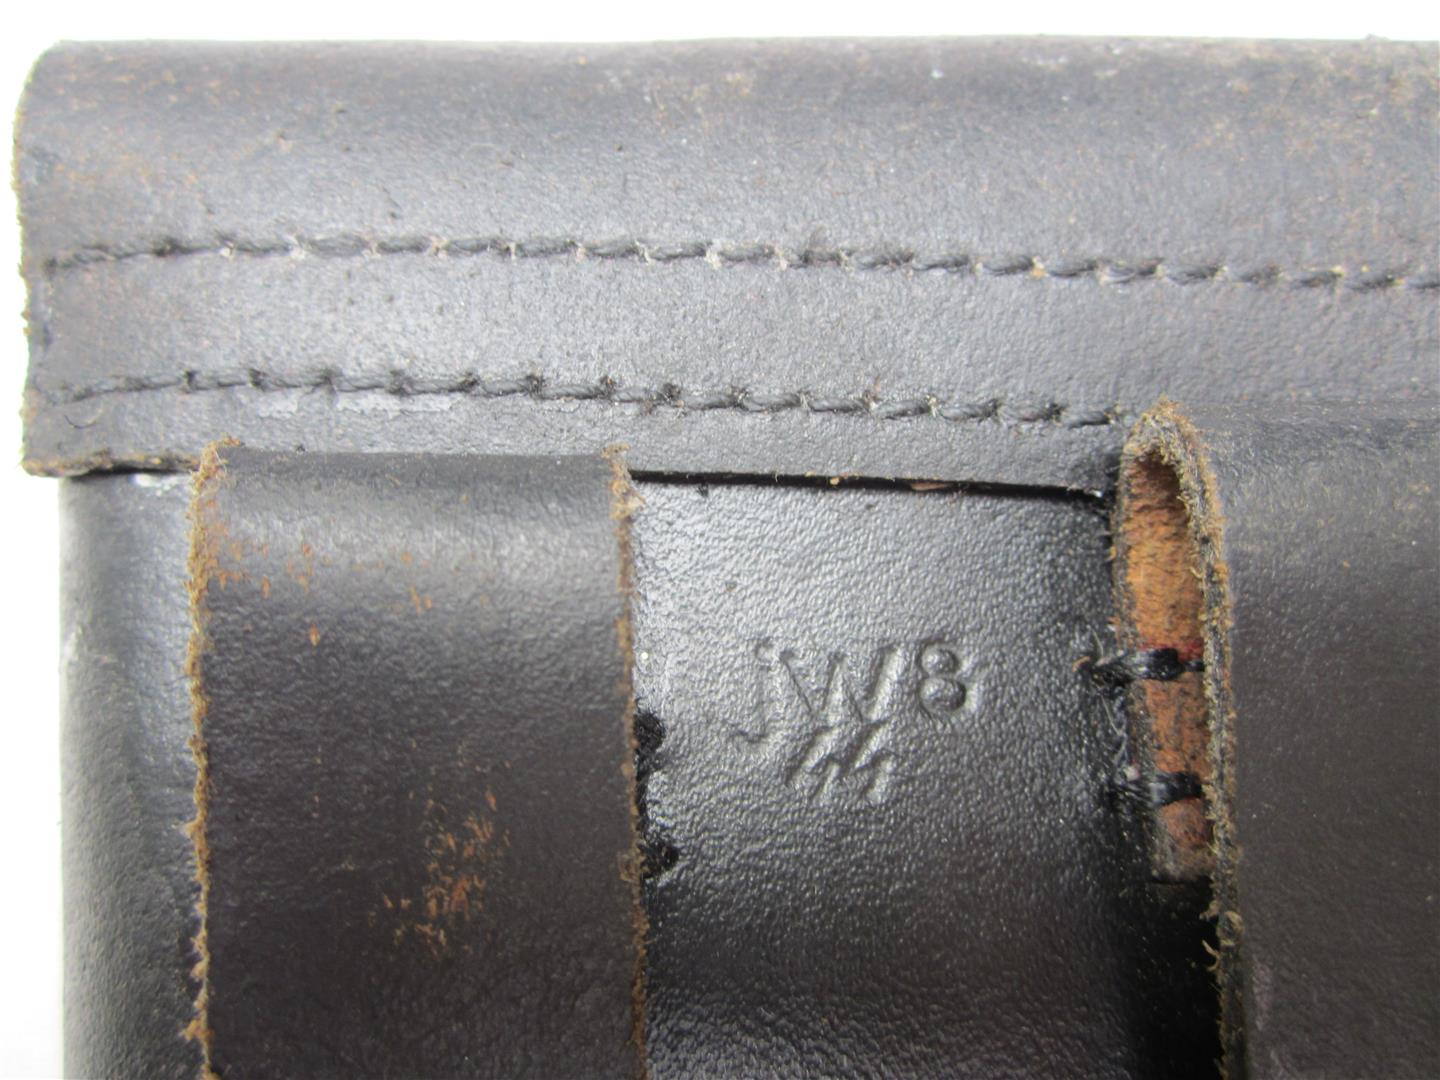 Captain Jacks Militaria - WW2 Walther P38 Holster, 1944